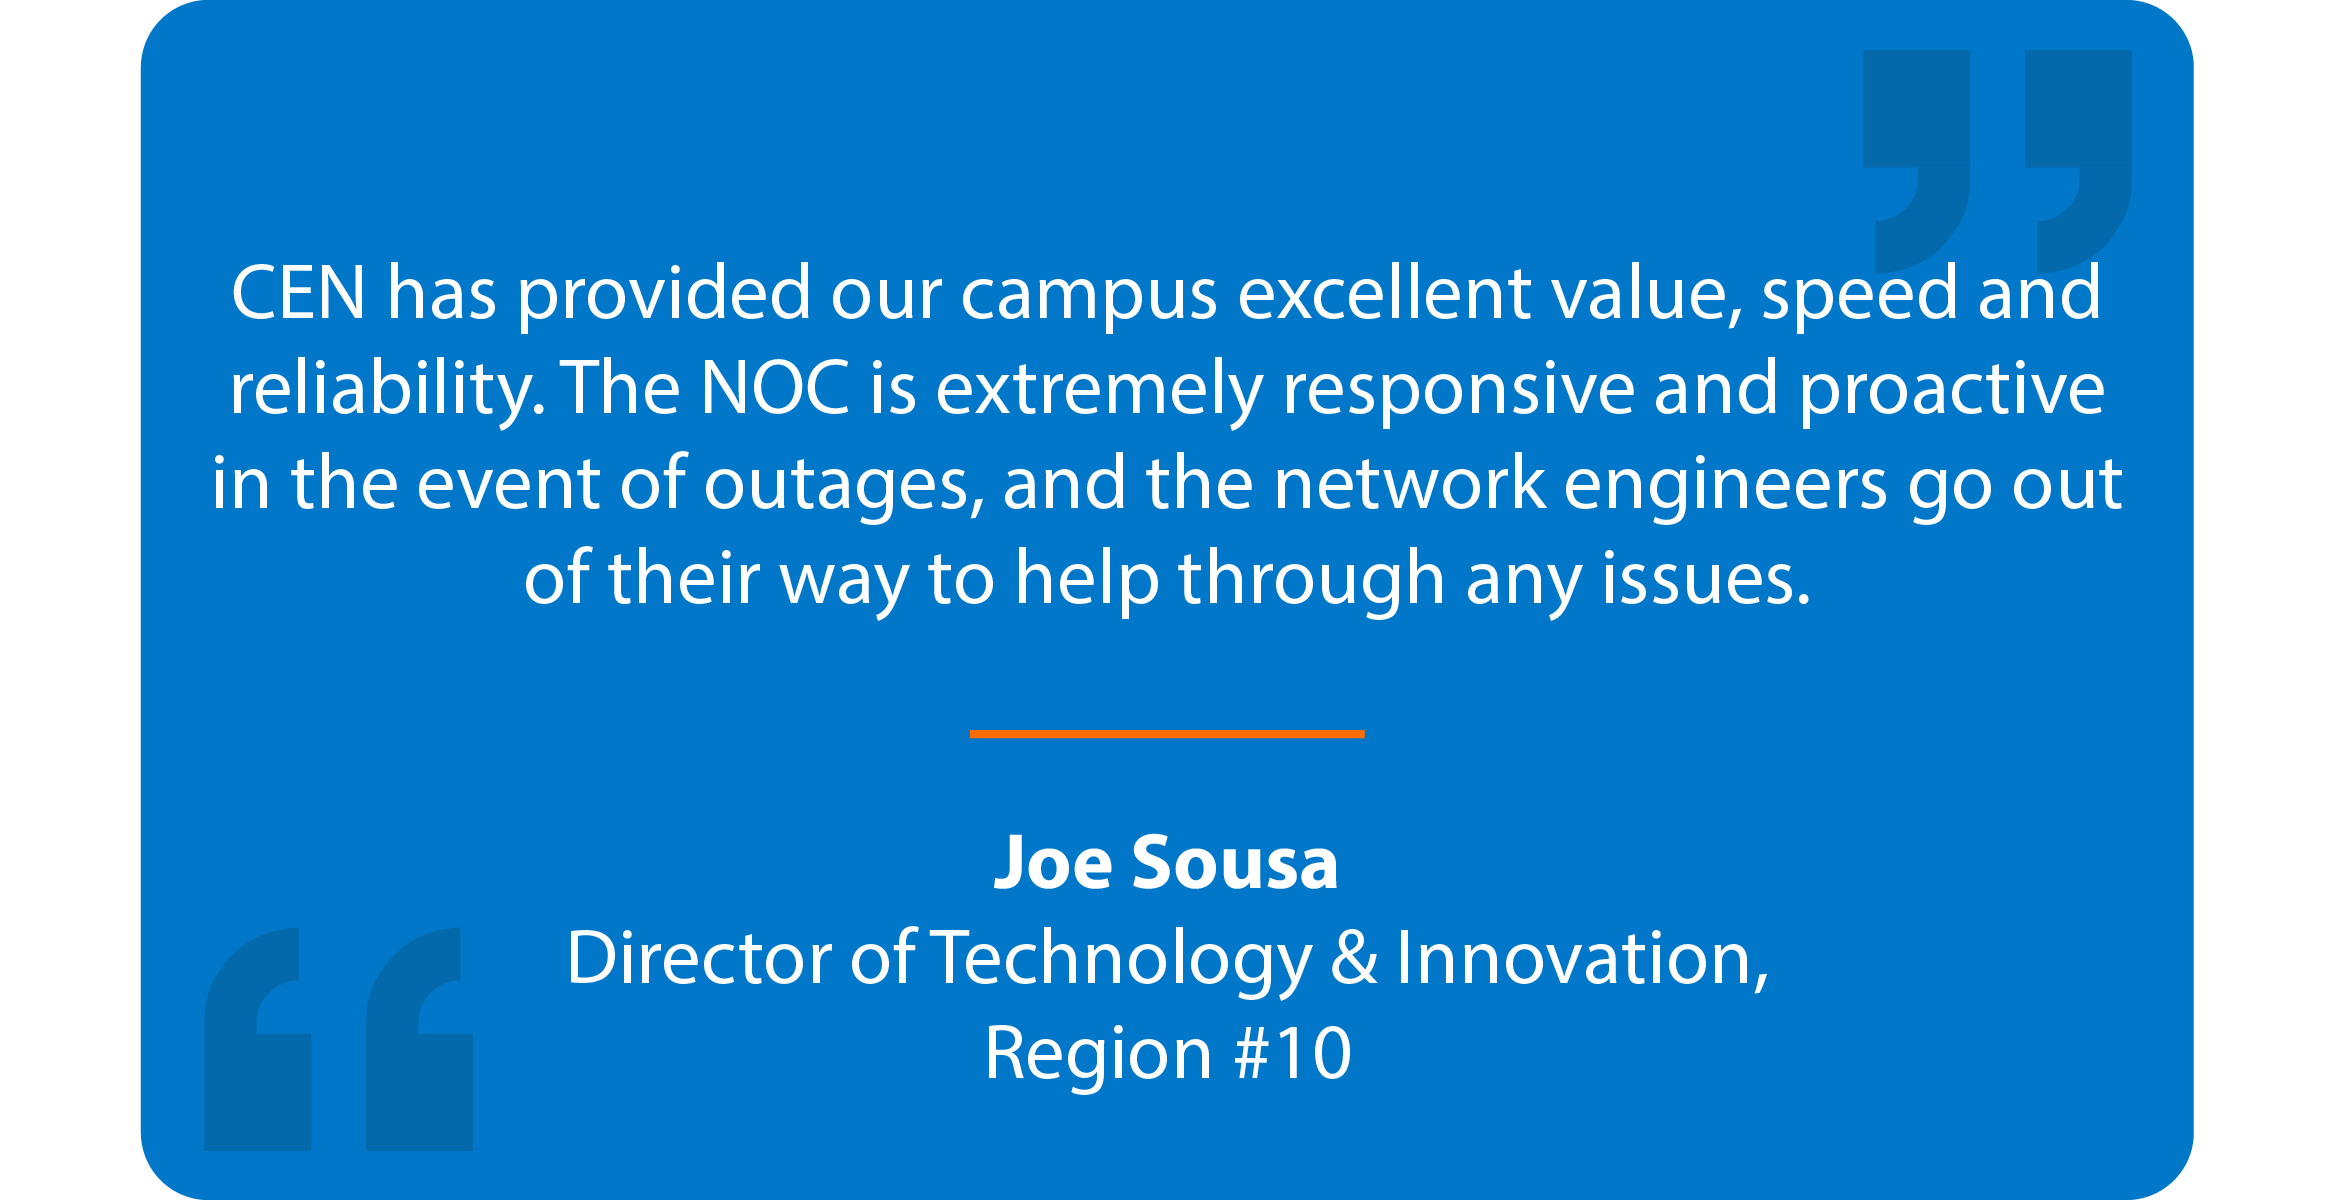 Blue box with a quote that reads: CEN has provided our campus excellent value, speed, and reliability. The NOC is extremely responsive and proactive in the event of outages, and the network engineers go out of their way to help through any issues. Joe Sousa, Director of Technology and Innovation, Region #10